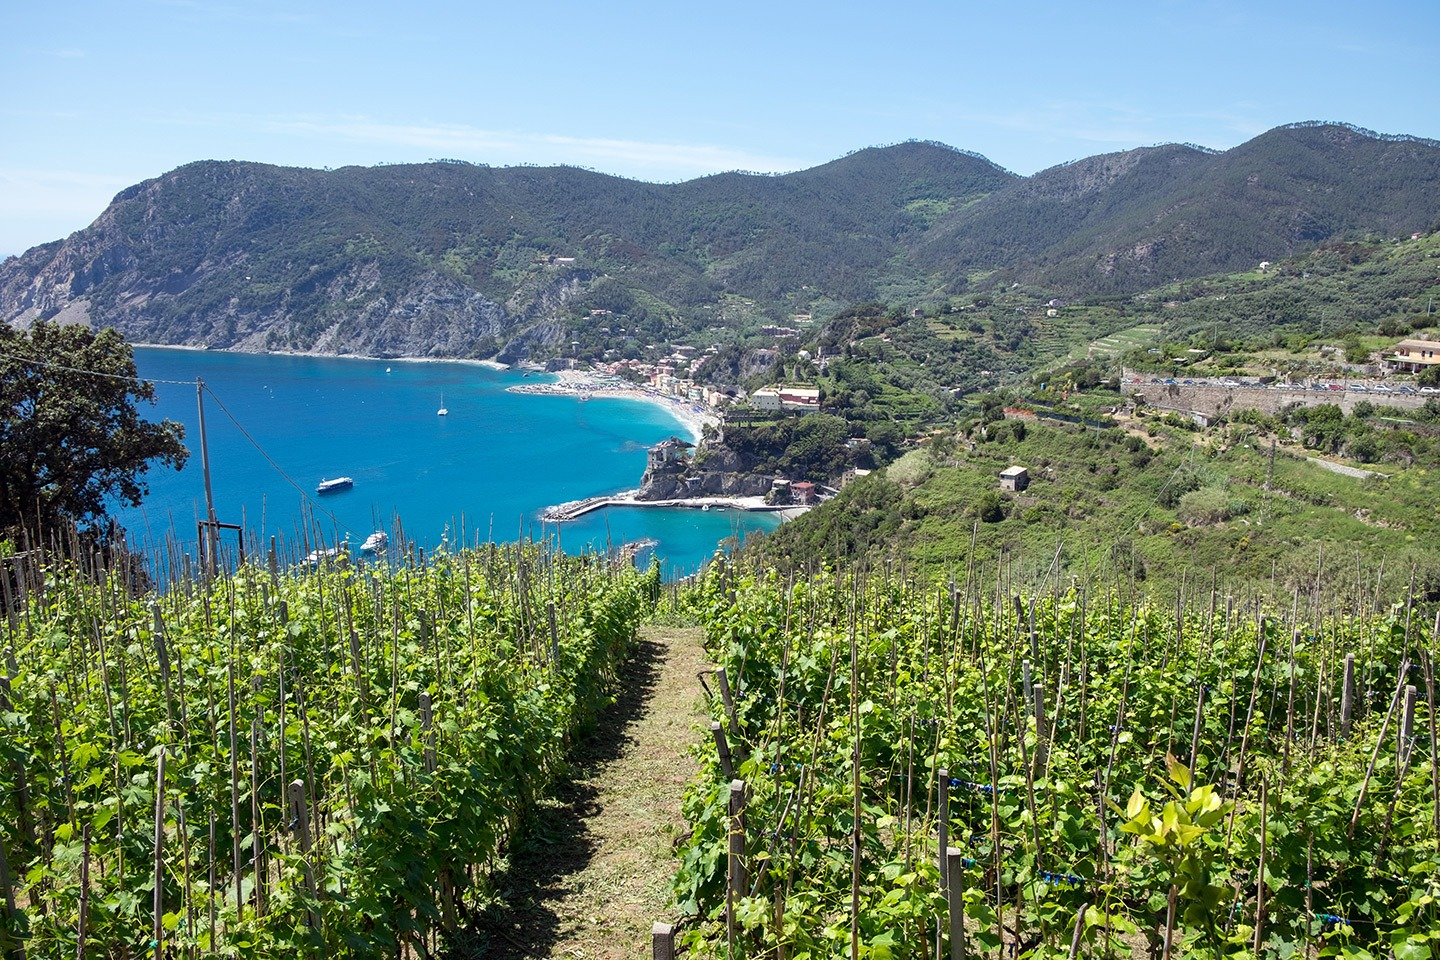 The first-timers guide to visiting the Cinque Terre – walking routes to Monterosso